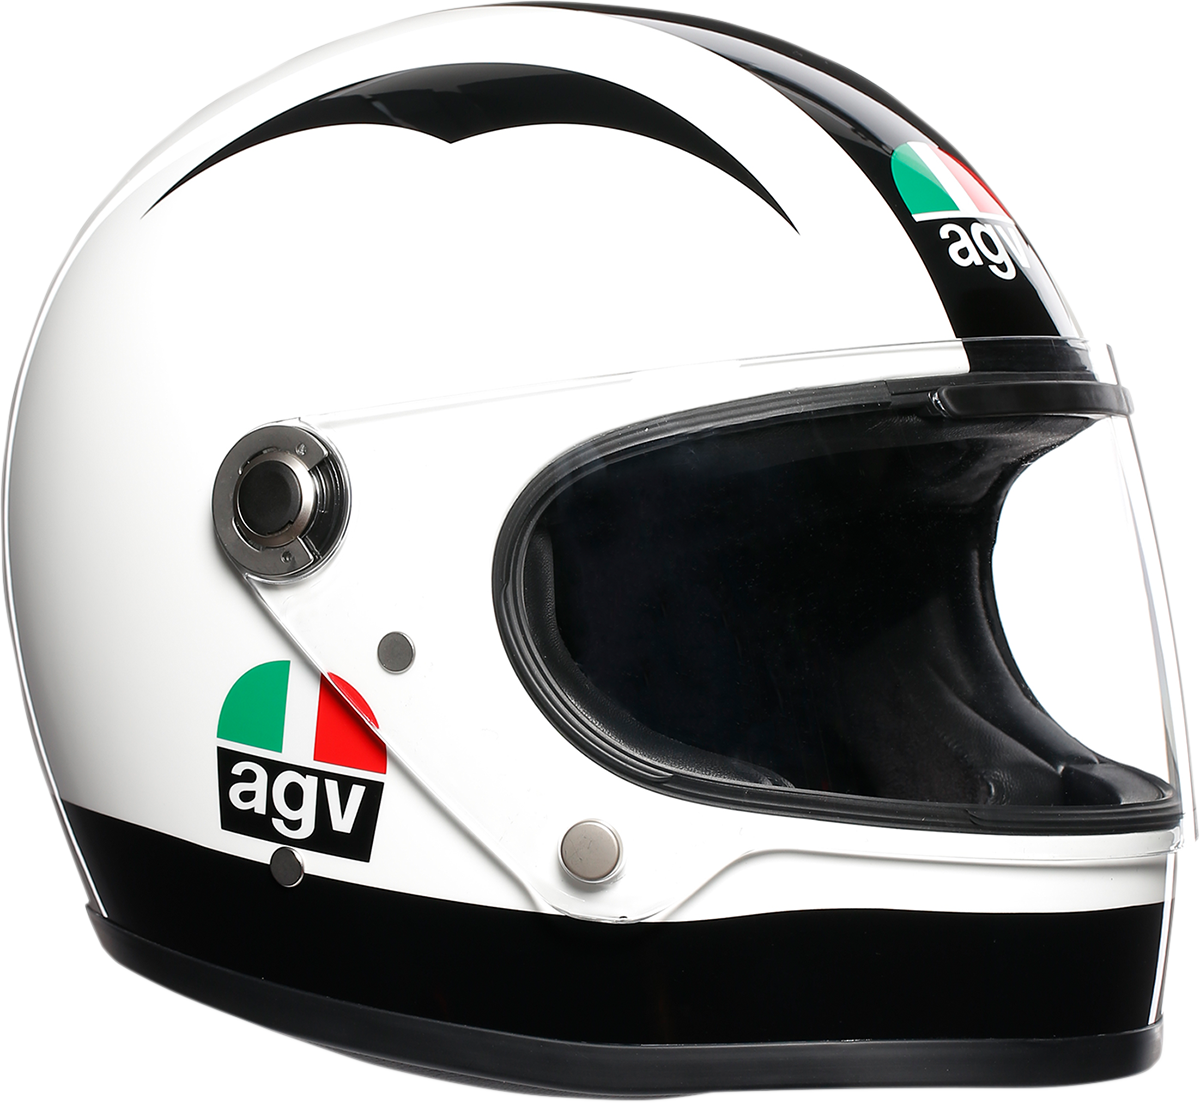 Agv Unisex Full Face Legends X3000 Motorcycle Riding Street Road Racing Helmet